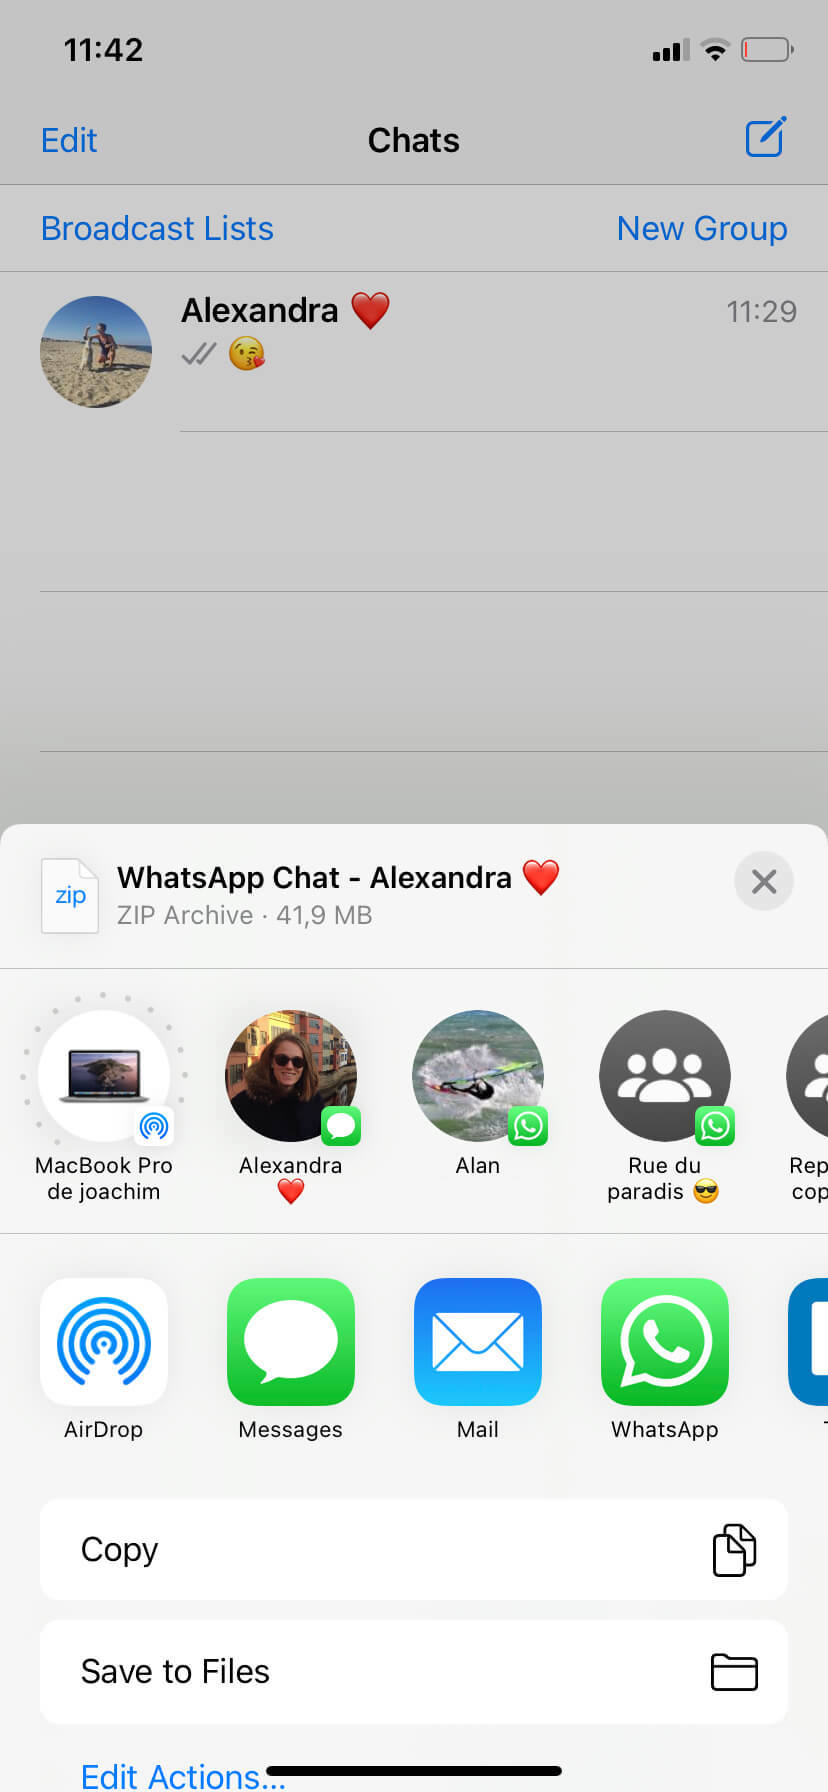 download-facebook-whatsapp-chat-history-conversations-4